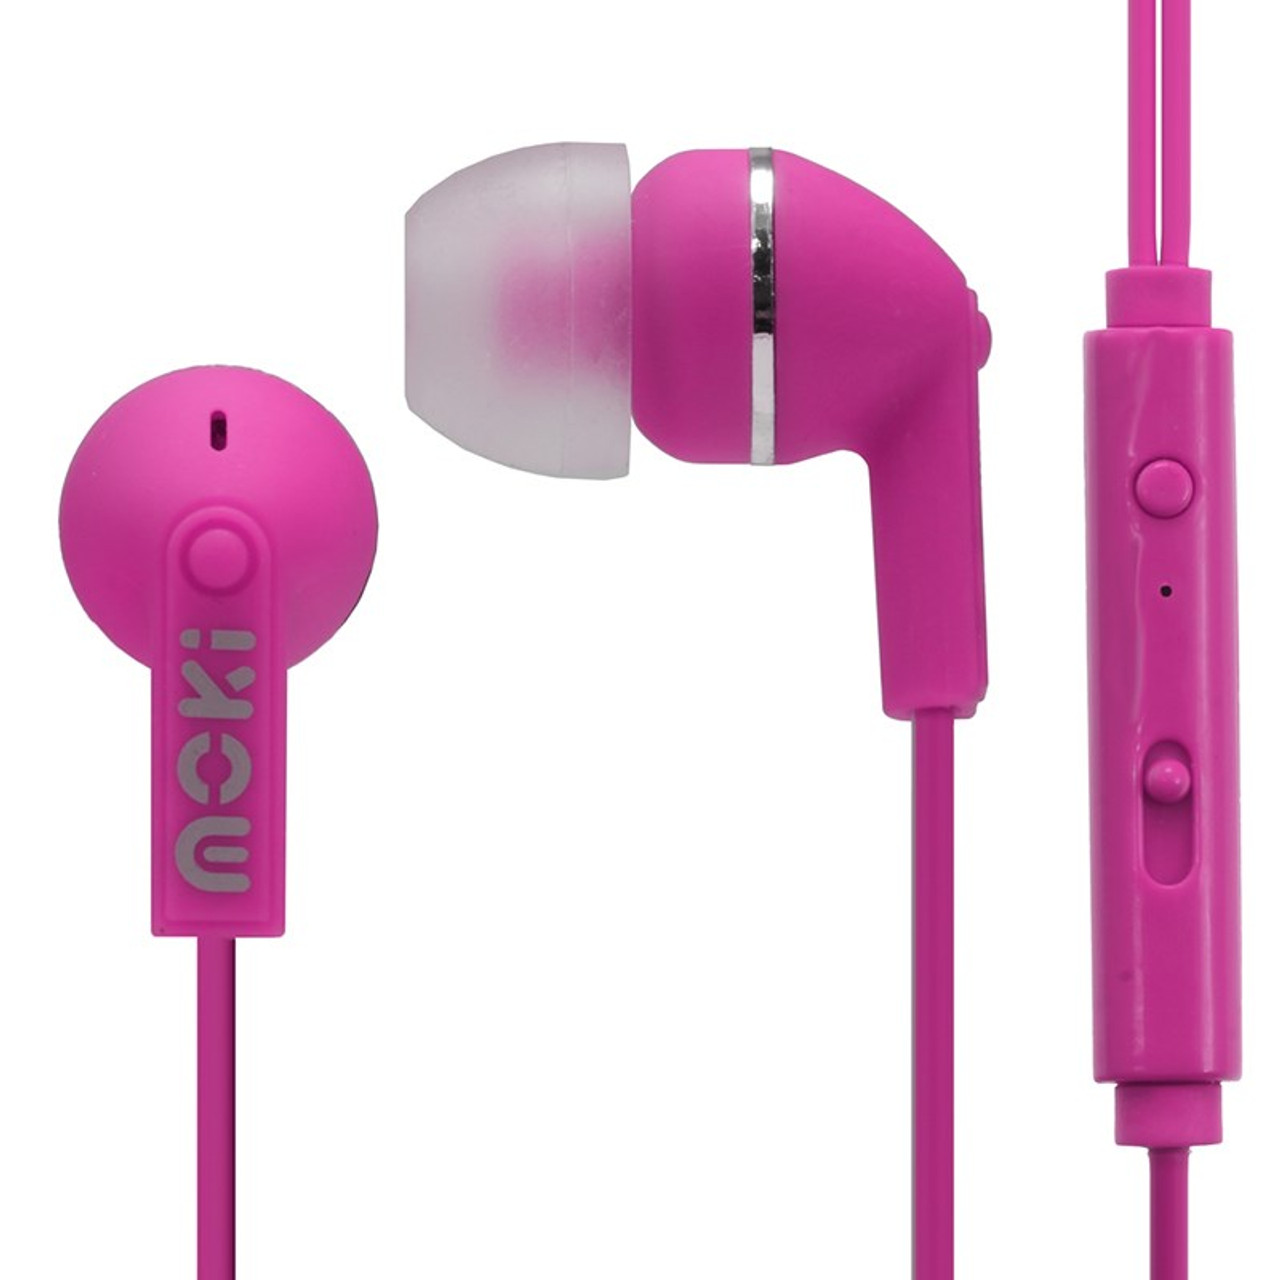 Image for Moki Noise Isolation Earbuds with In-Line Mic/Control - Pink CX Computer Superstore